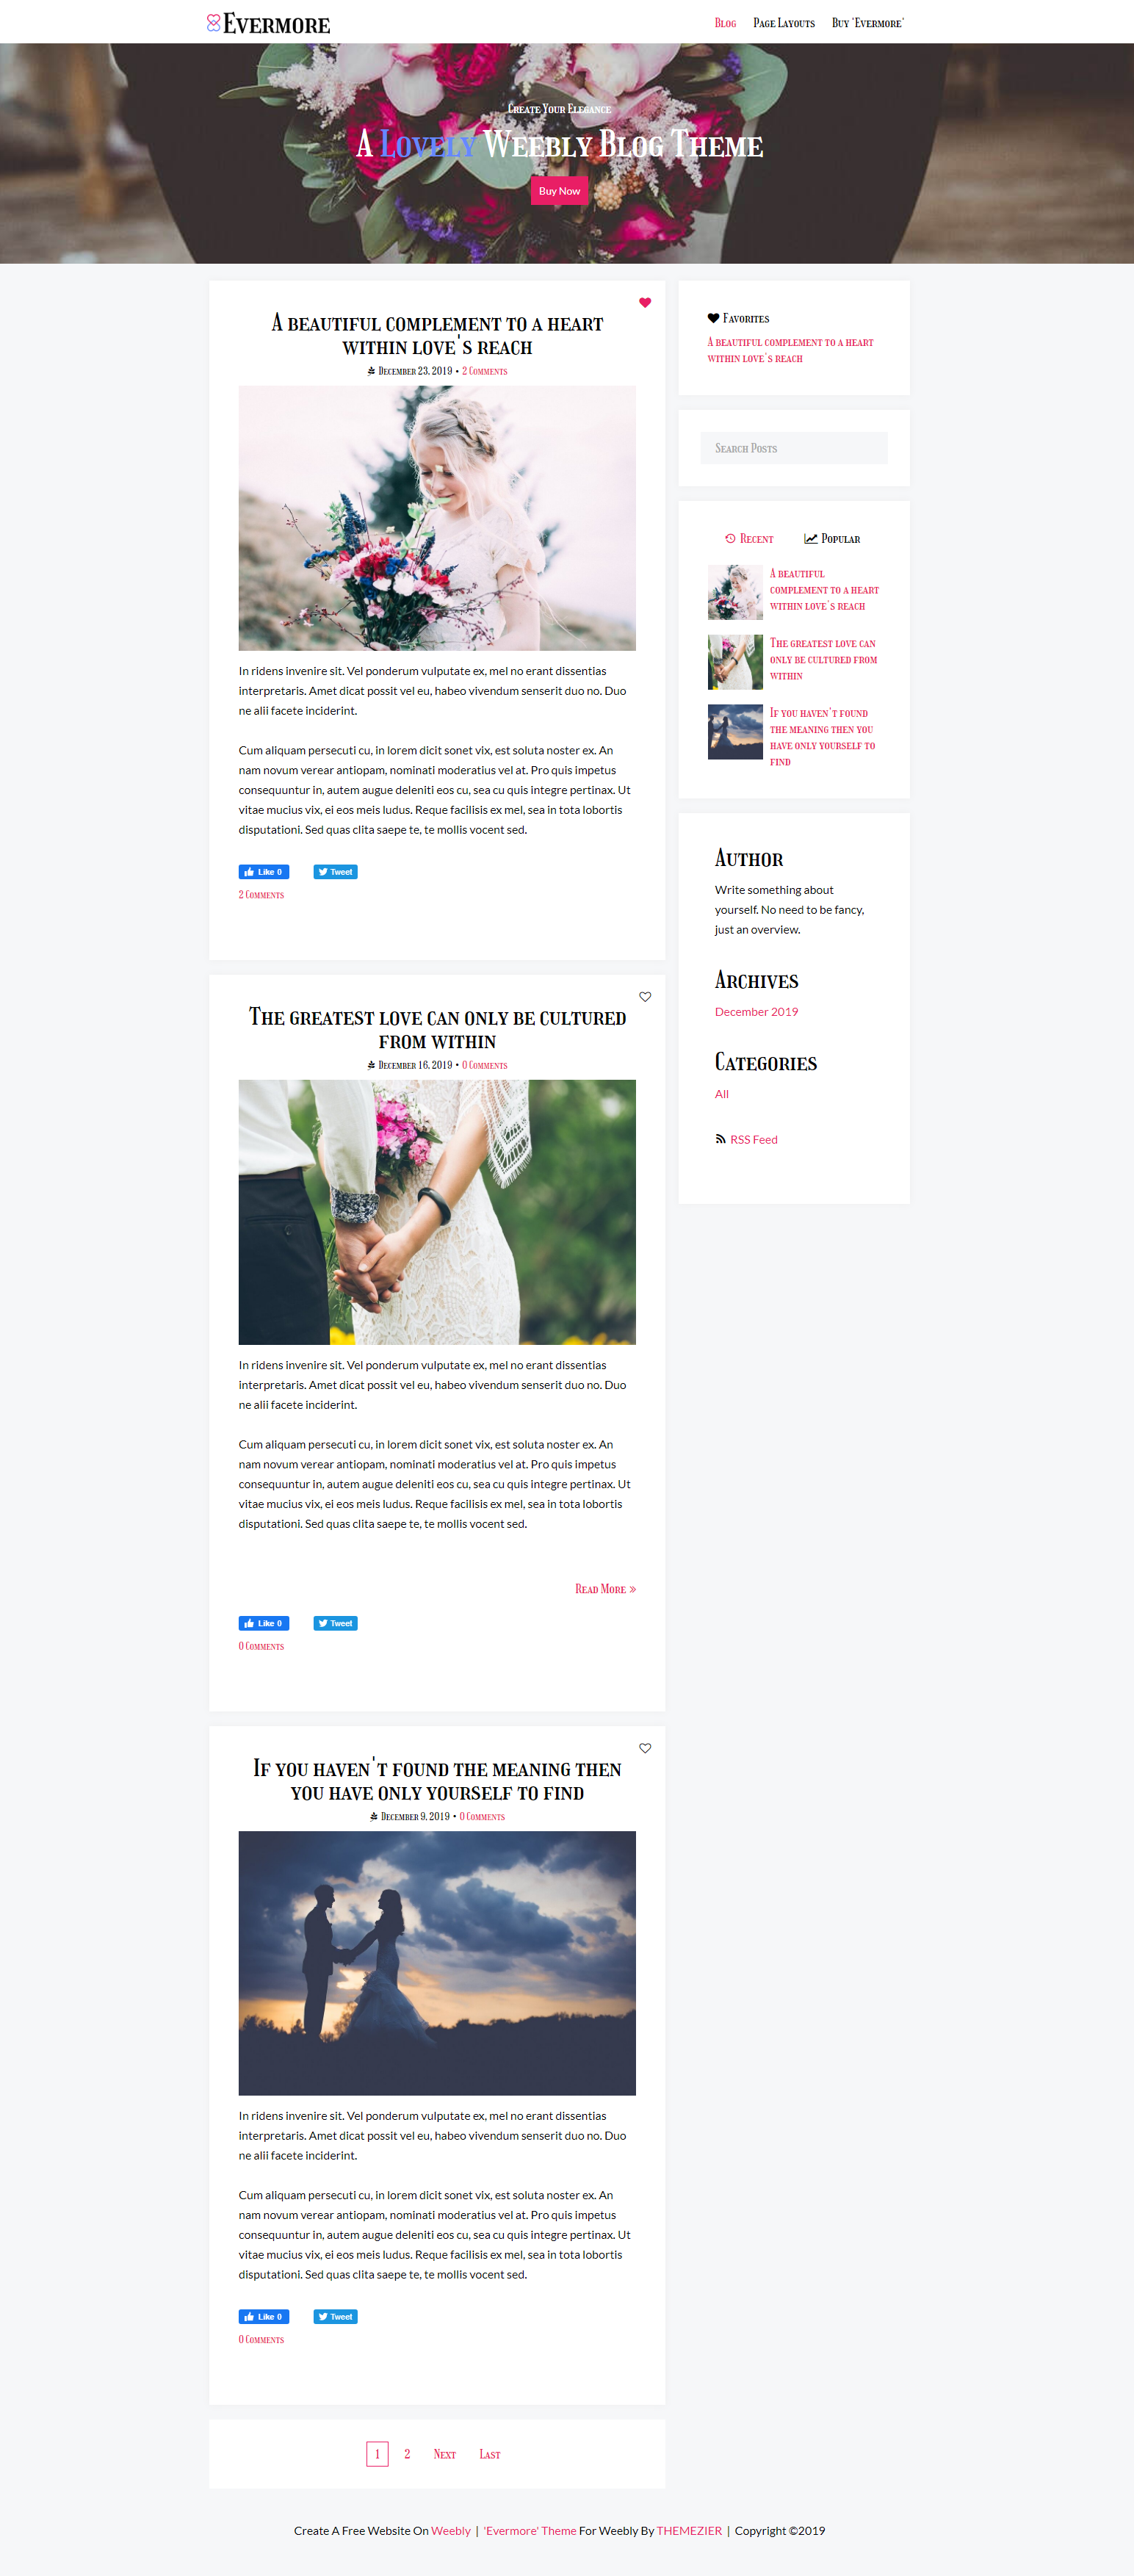 Evermore Weebly Blog Theme